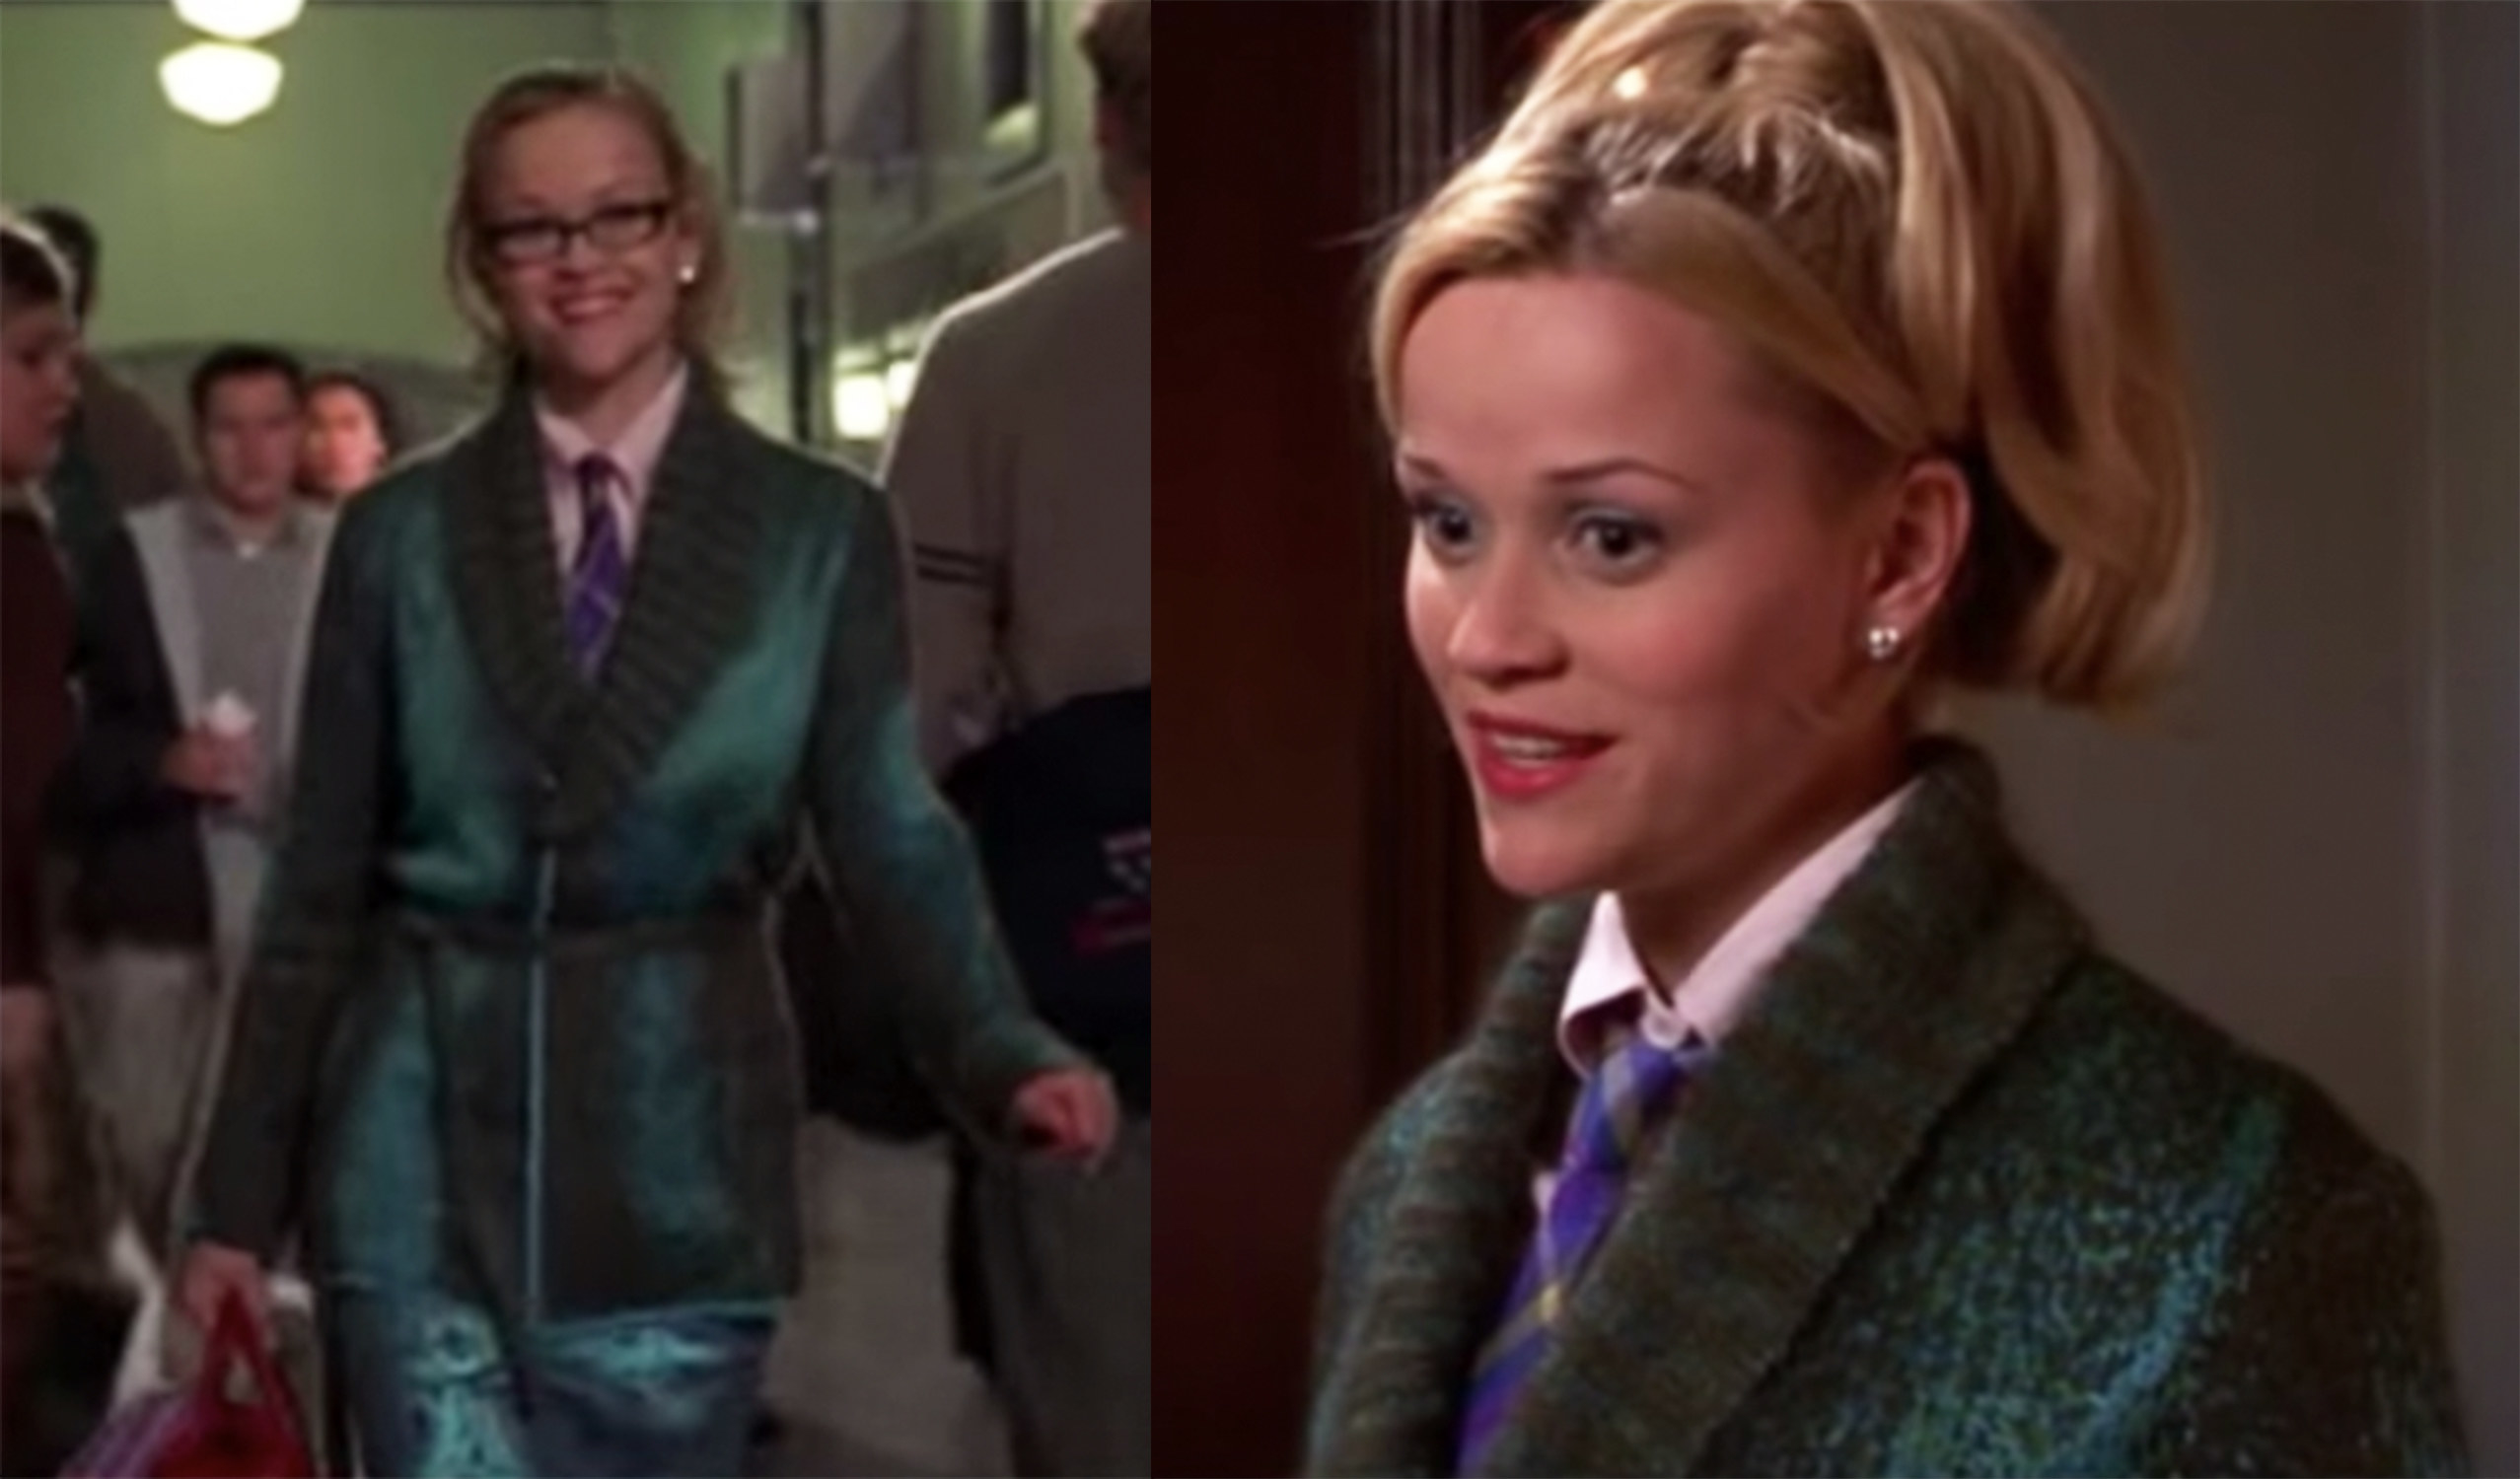 Snake-colored, shiny suit and plaid tie